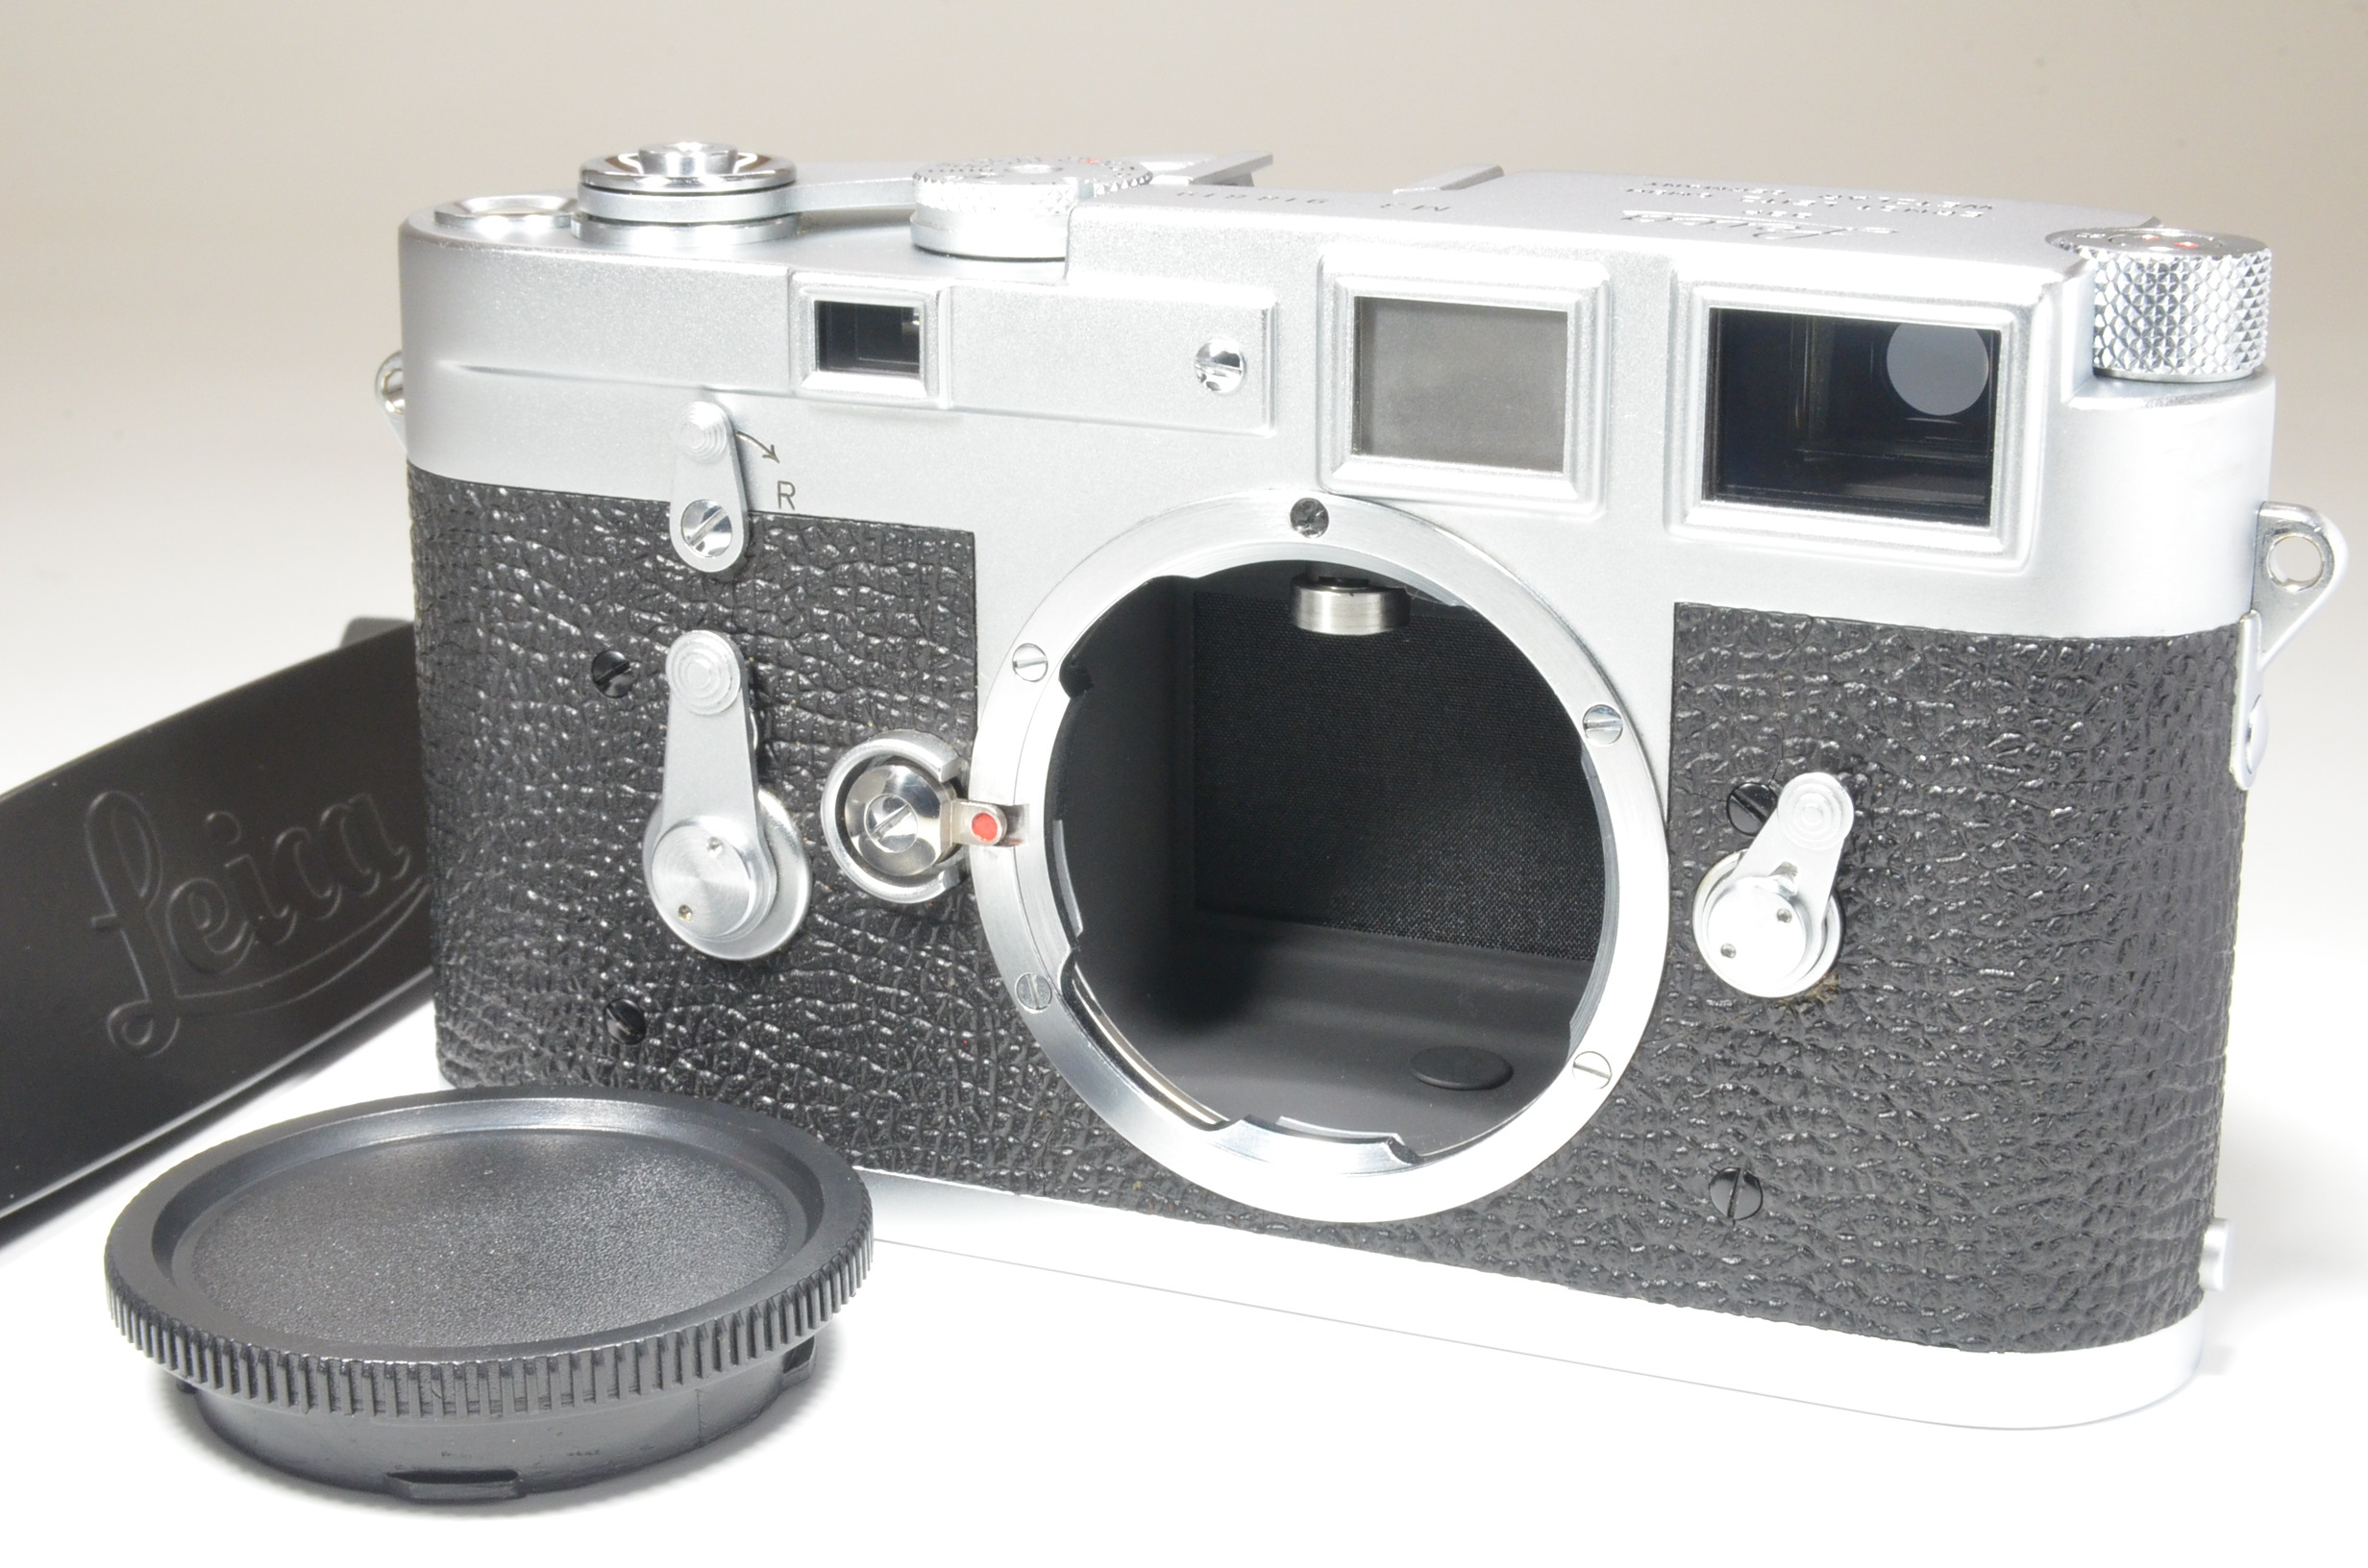 leica m3 double stroke s/n 918819 year 1958 with strap